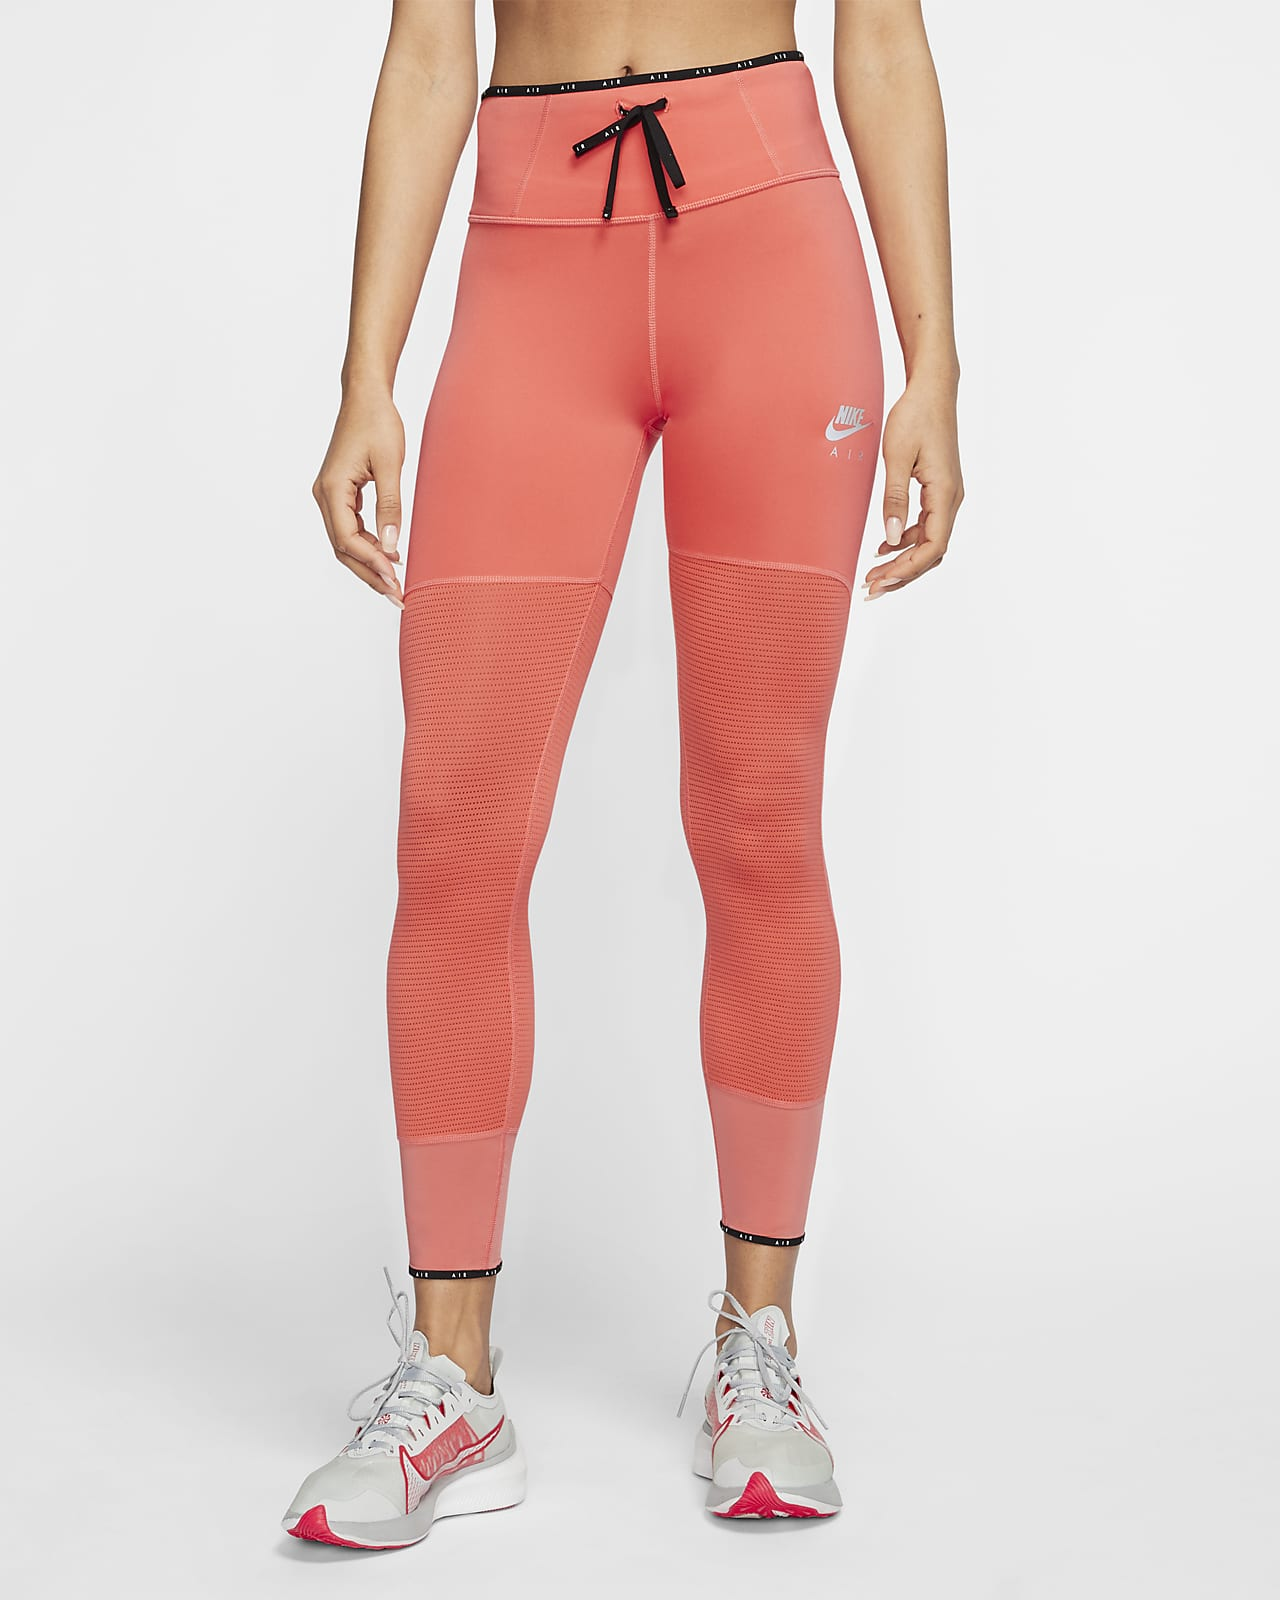 Nike Air Damen-7/8-Lauftights